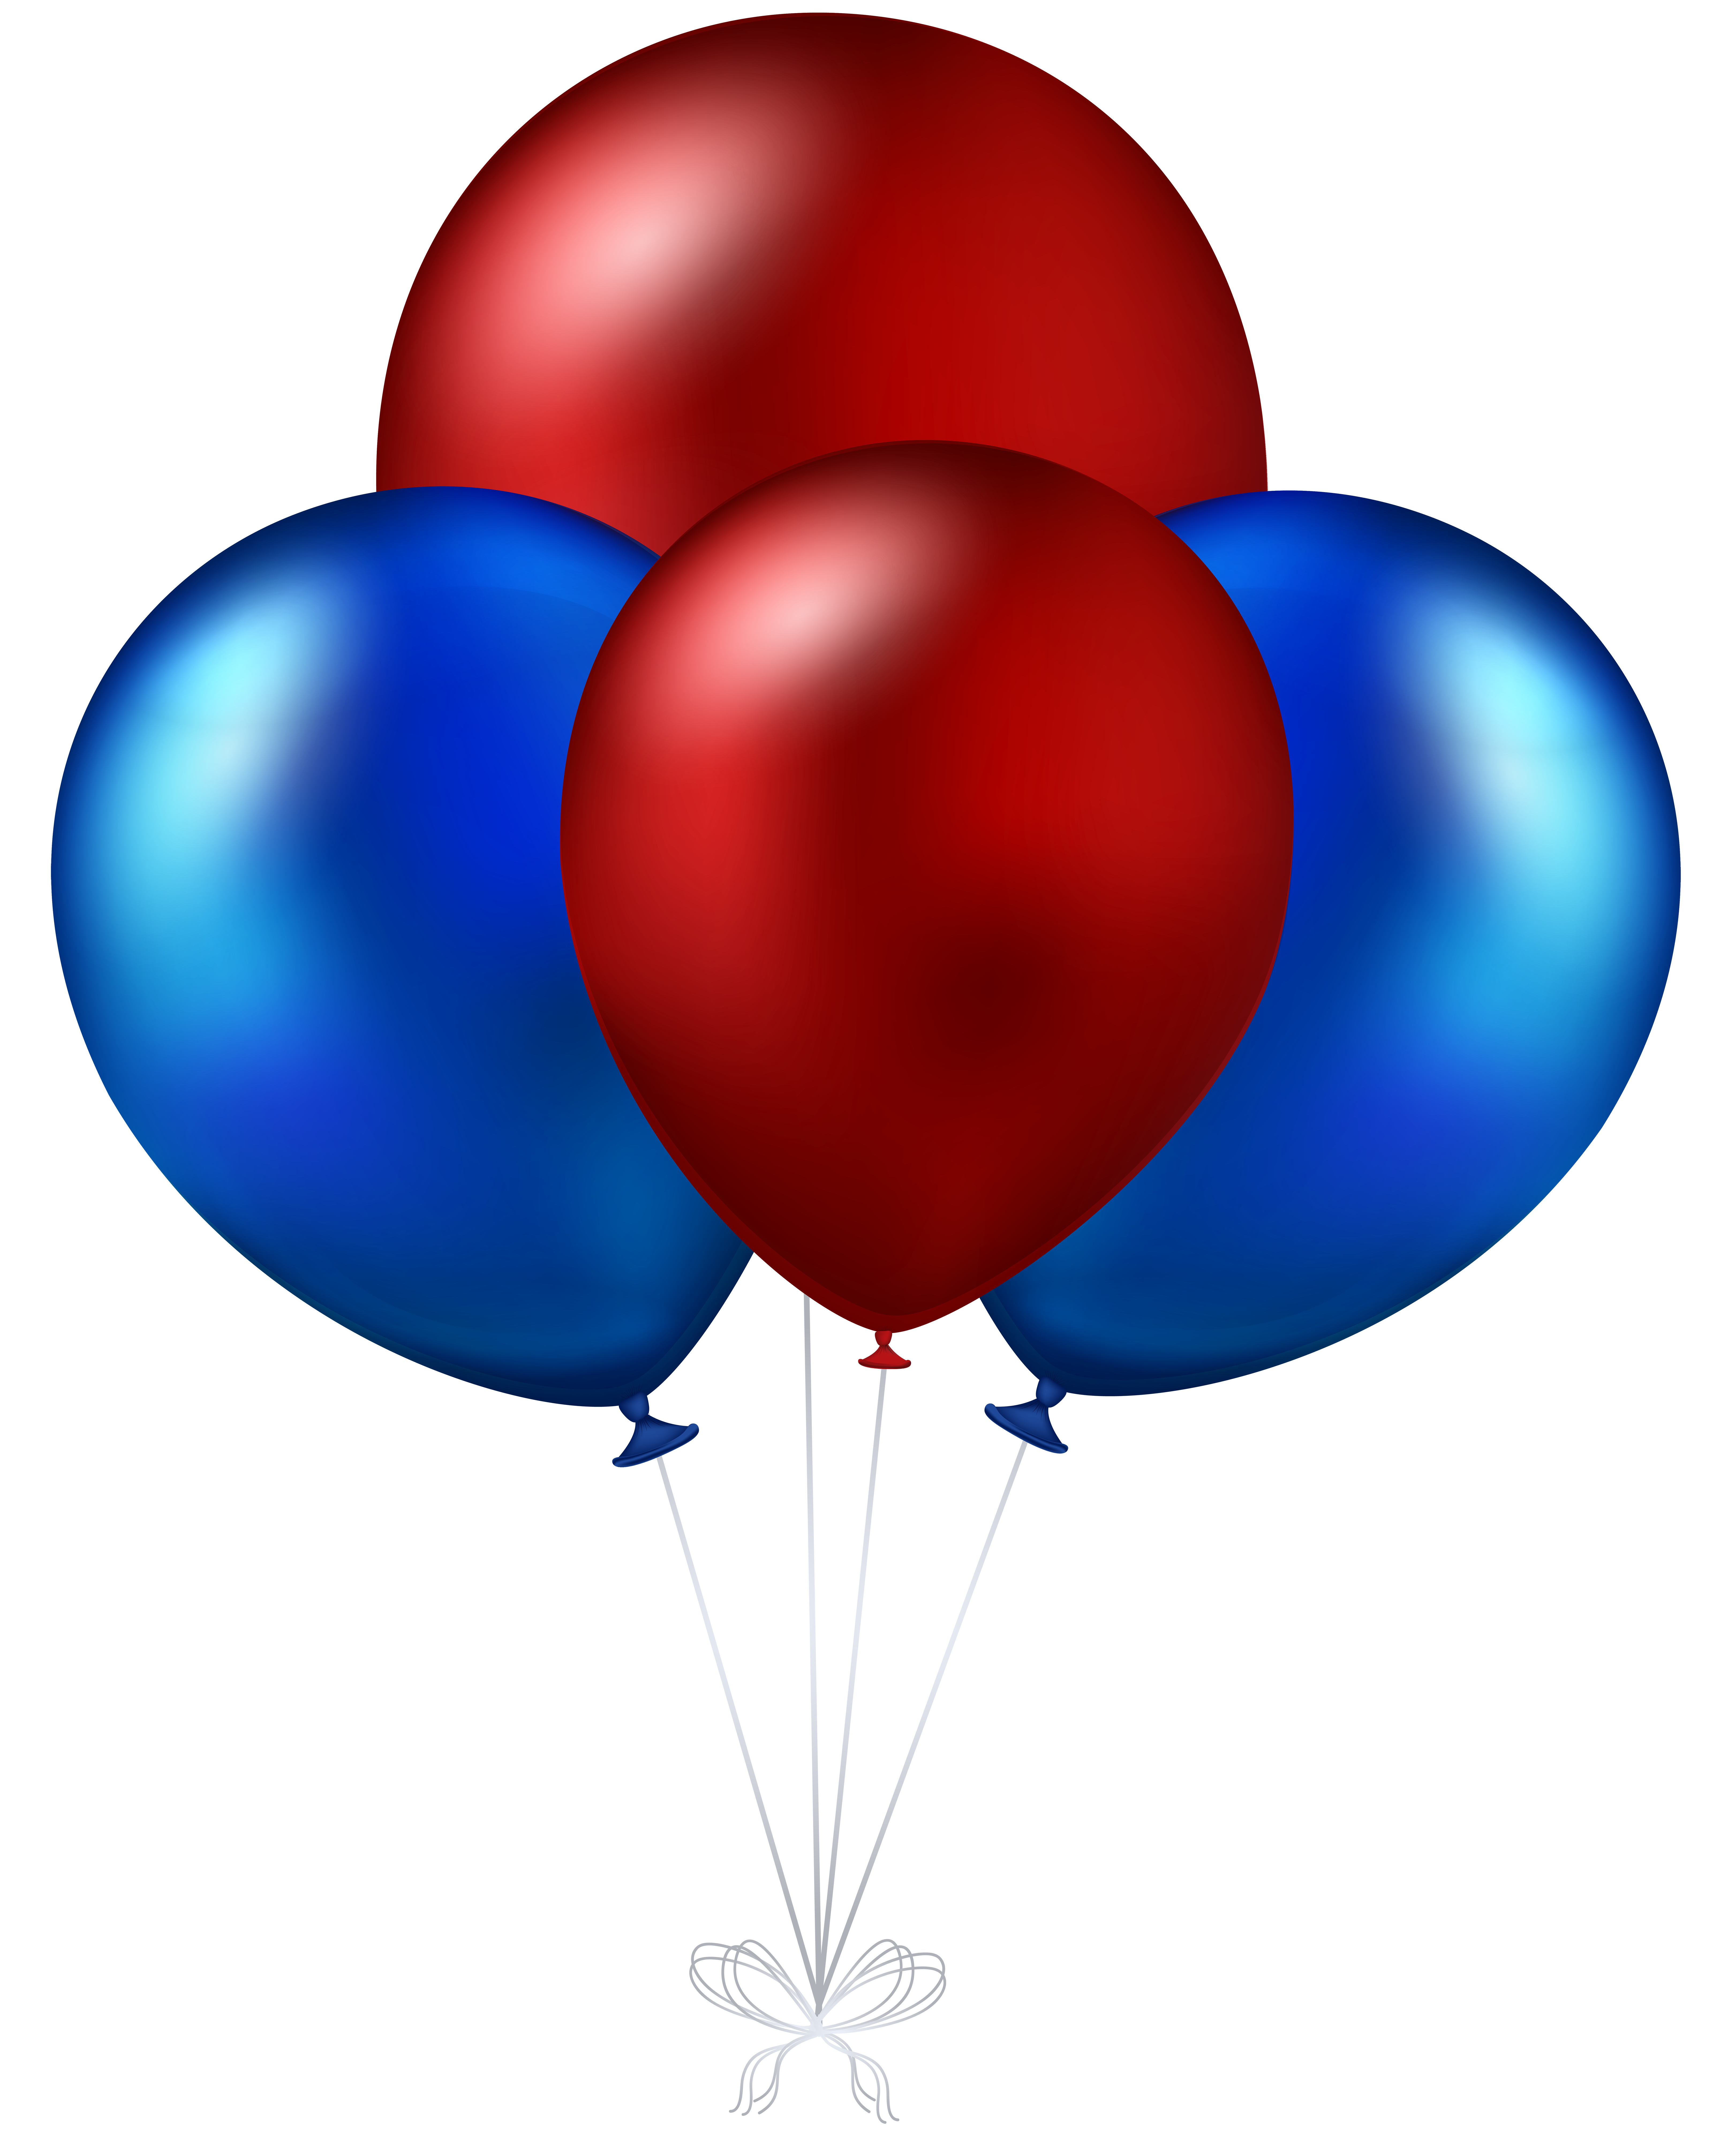 Red and Blue Balloons Transparent PNG Clip Art Image.